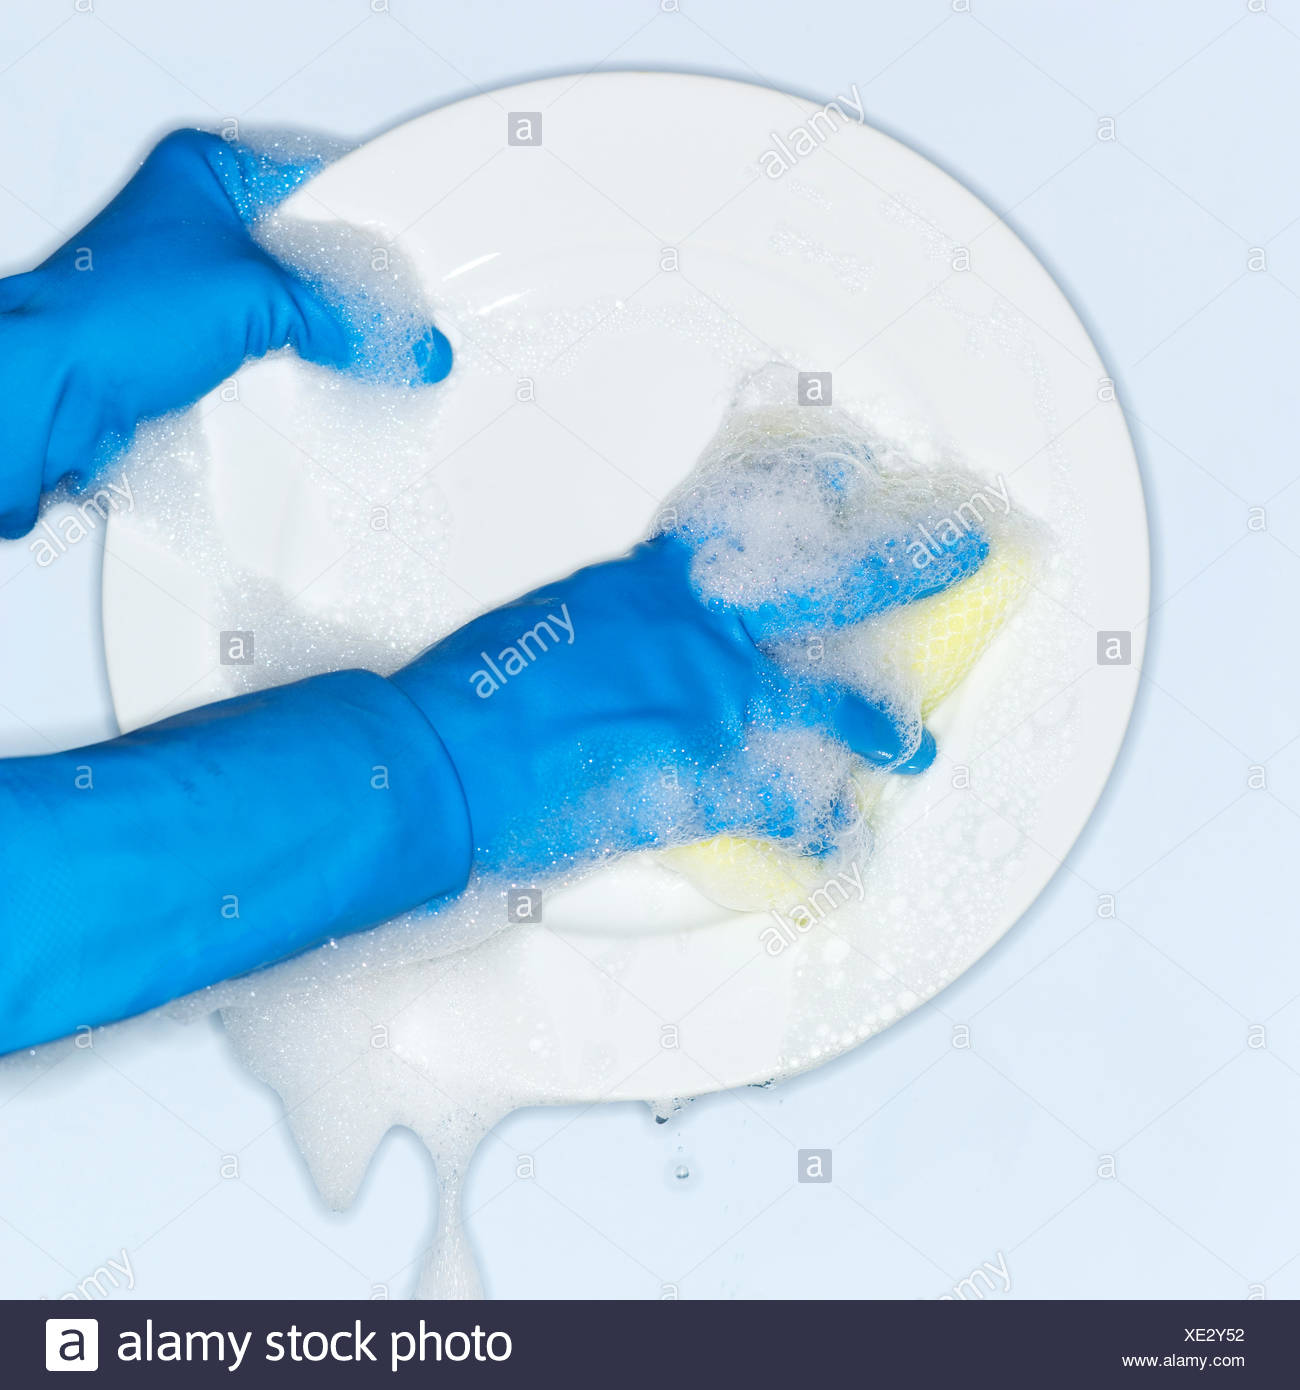 Hands in blue gloves washing plate - Stock Image